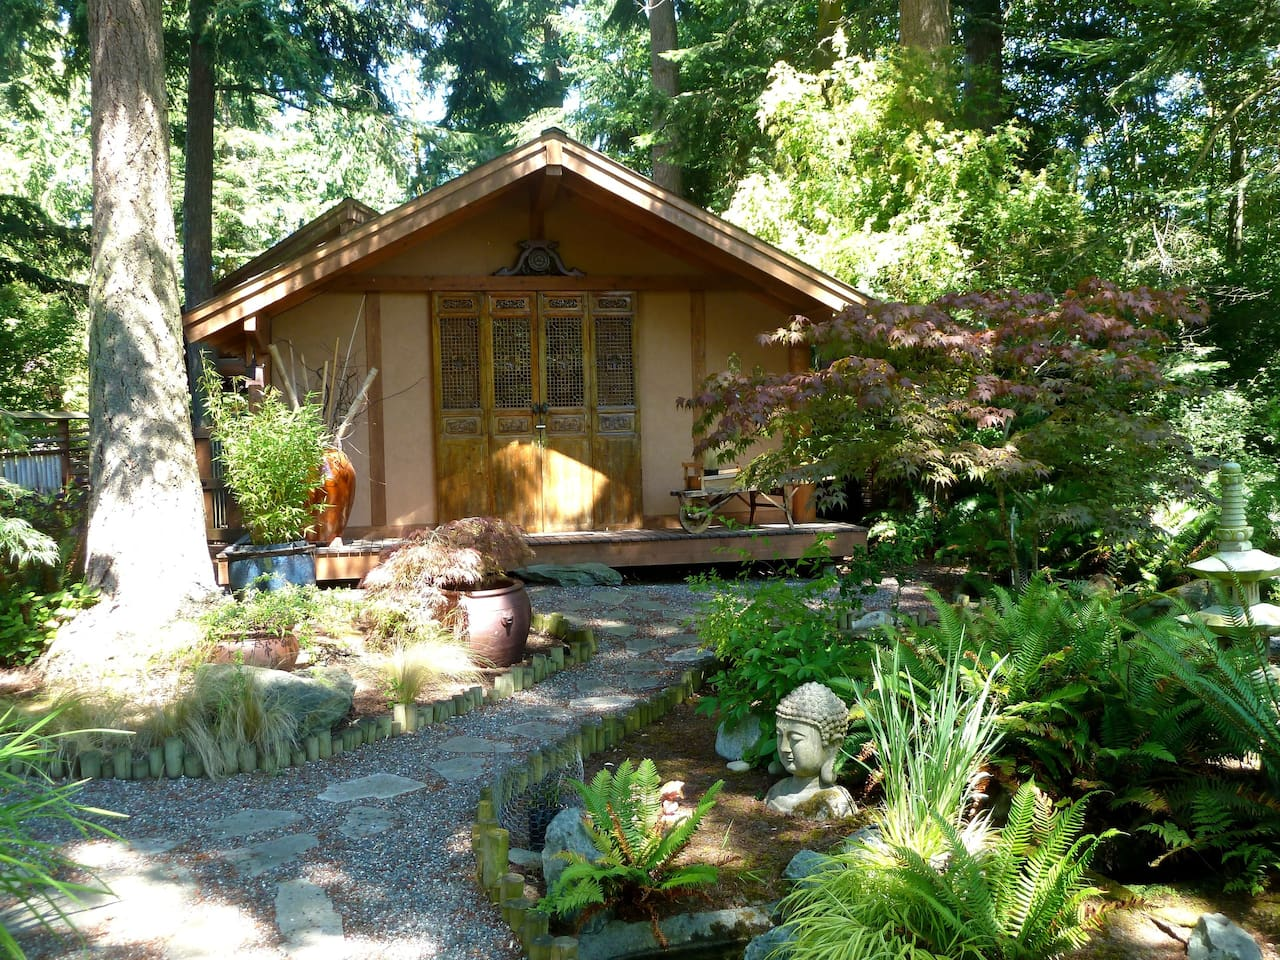 Whispering Bamboo B&B - Guesthouses for Rent in Coupeville ...